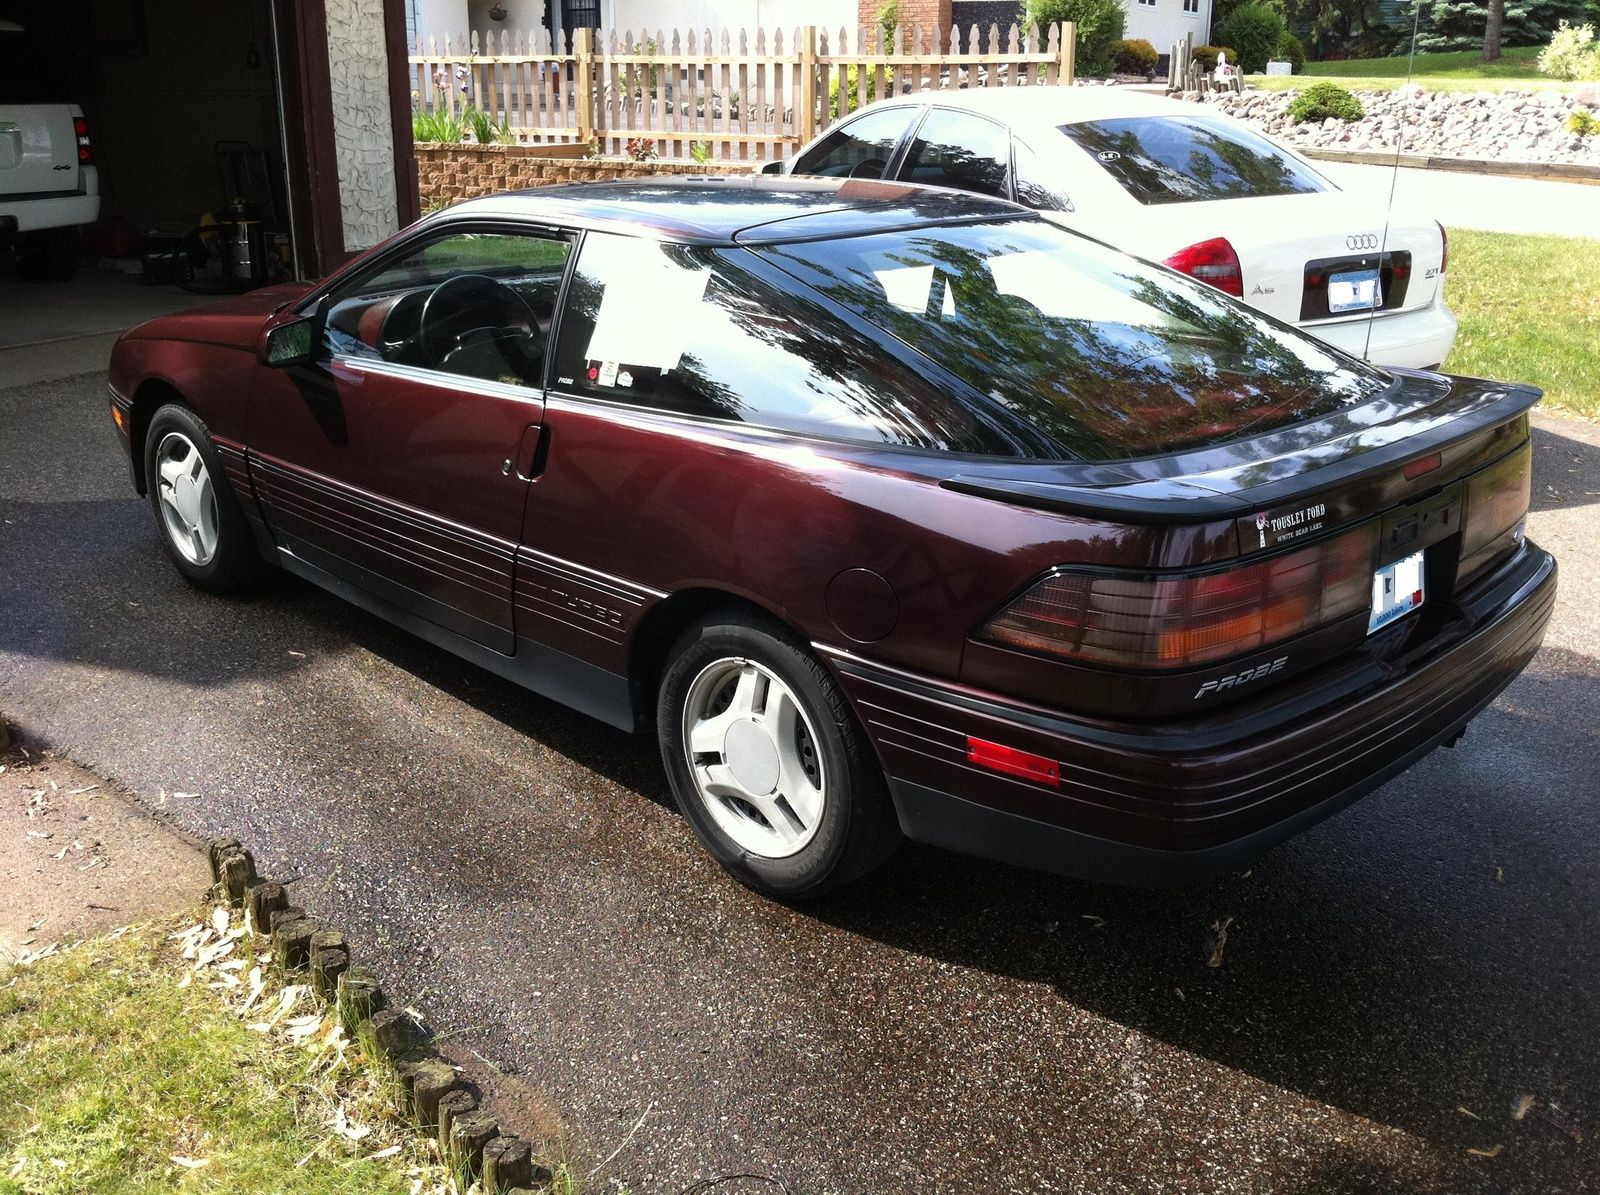 I had a 1989 Ford Probe GT just like this one, same